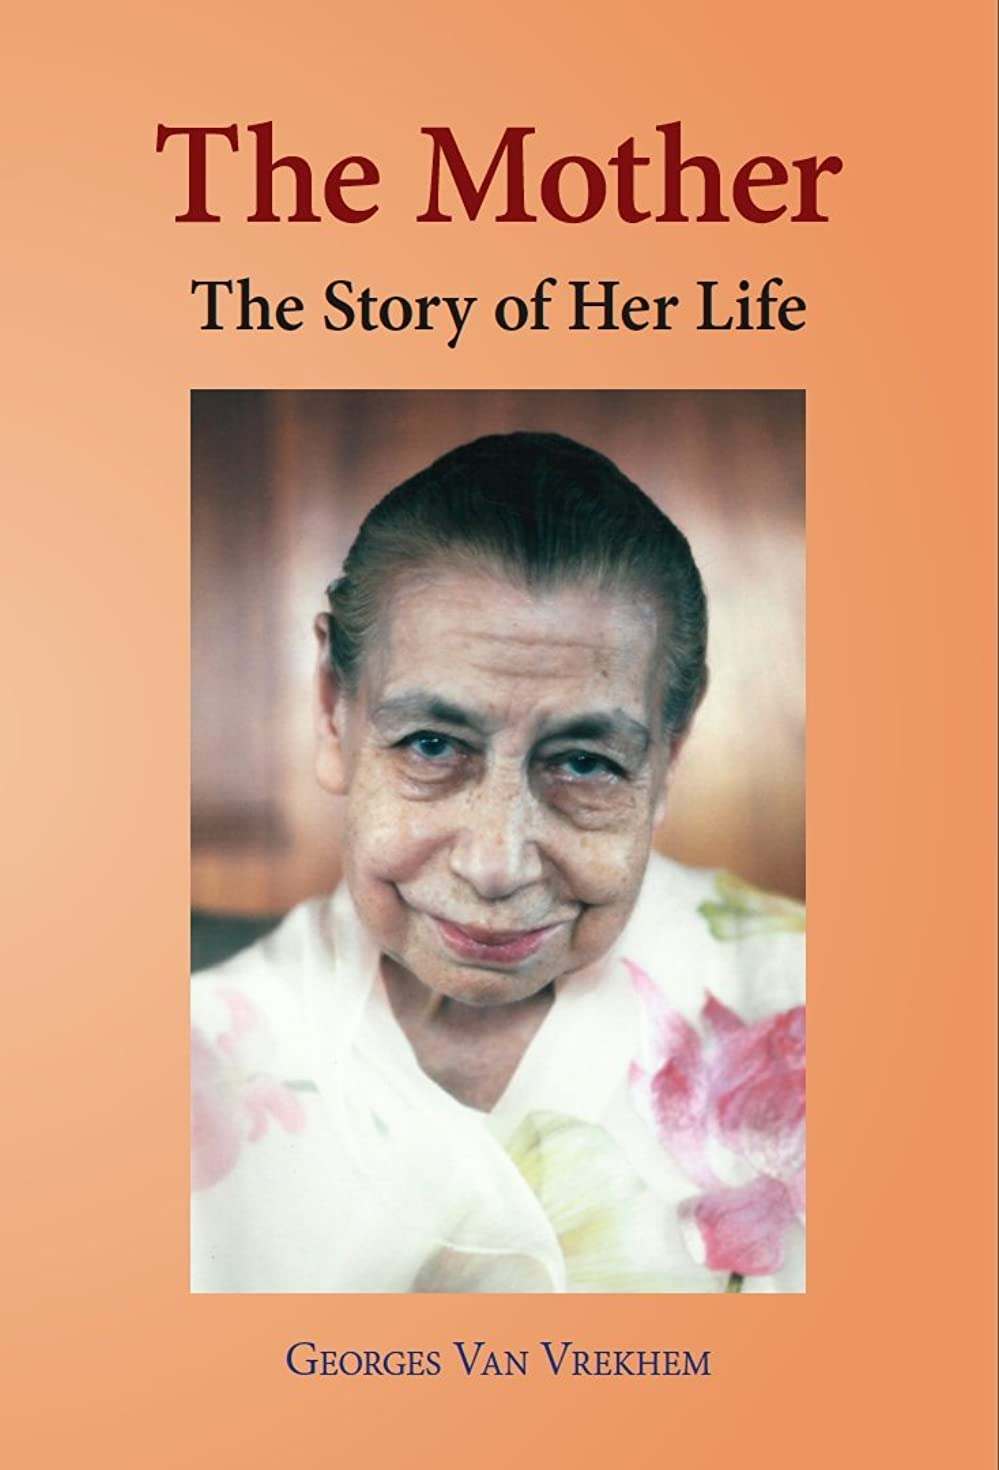 哲学博士トランジスタ正直The Mother: The Story of Her Life (English Edition)